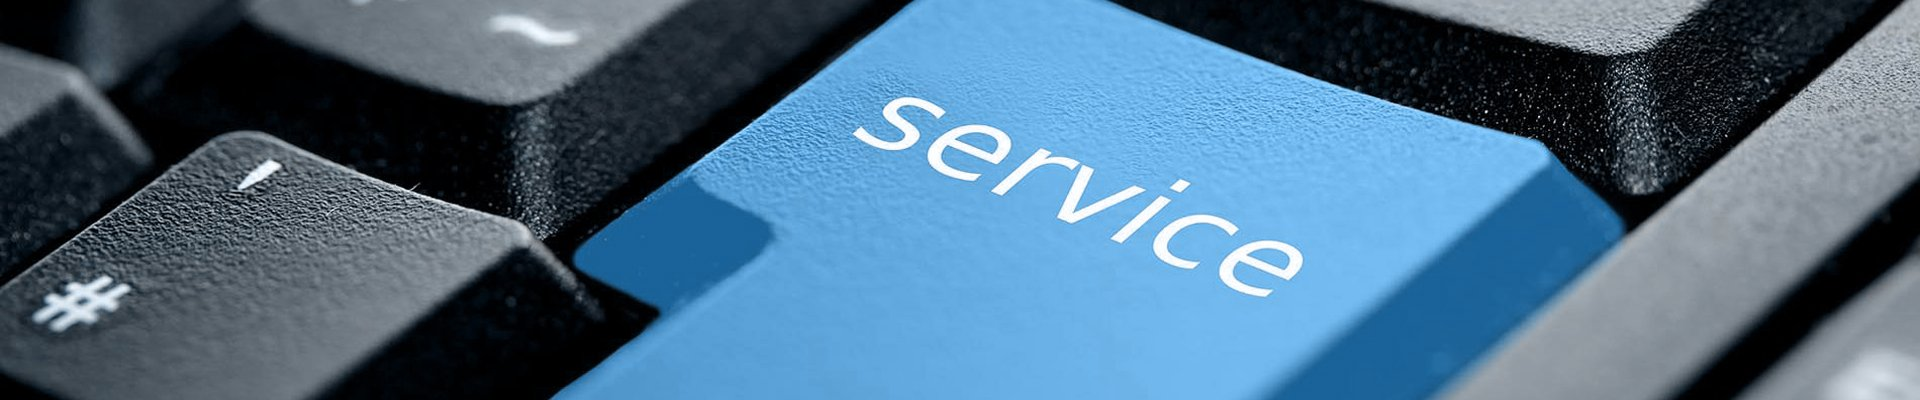 Service BestensVersichert.at